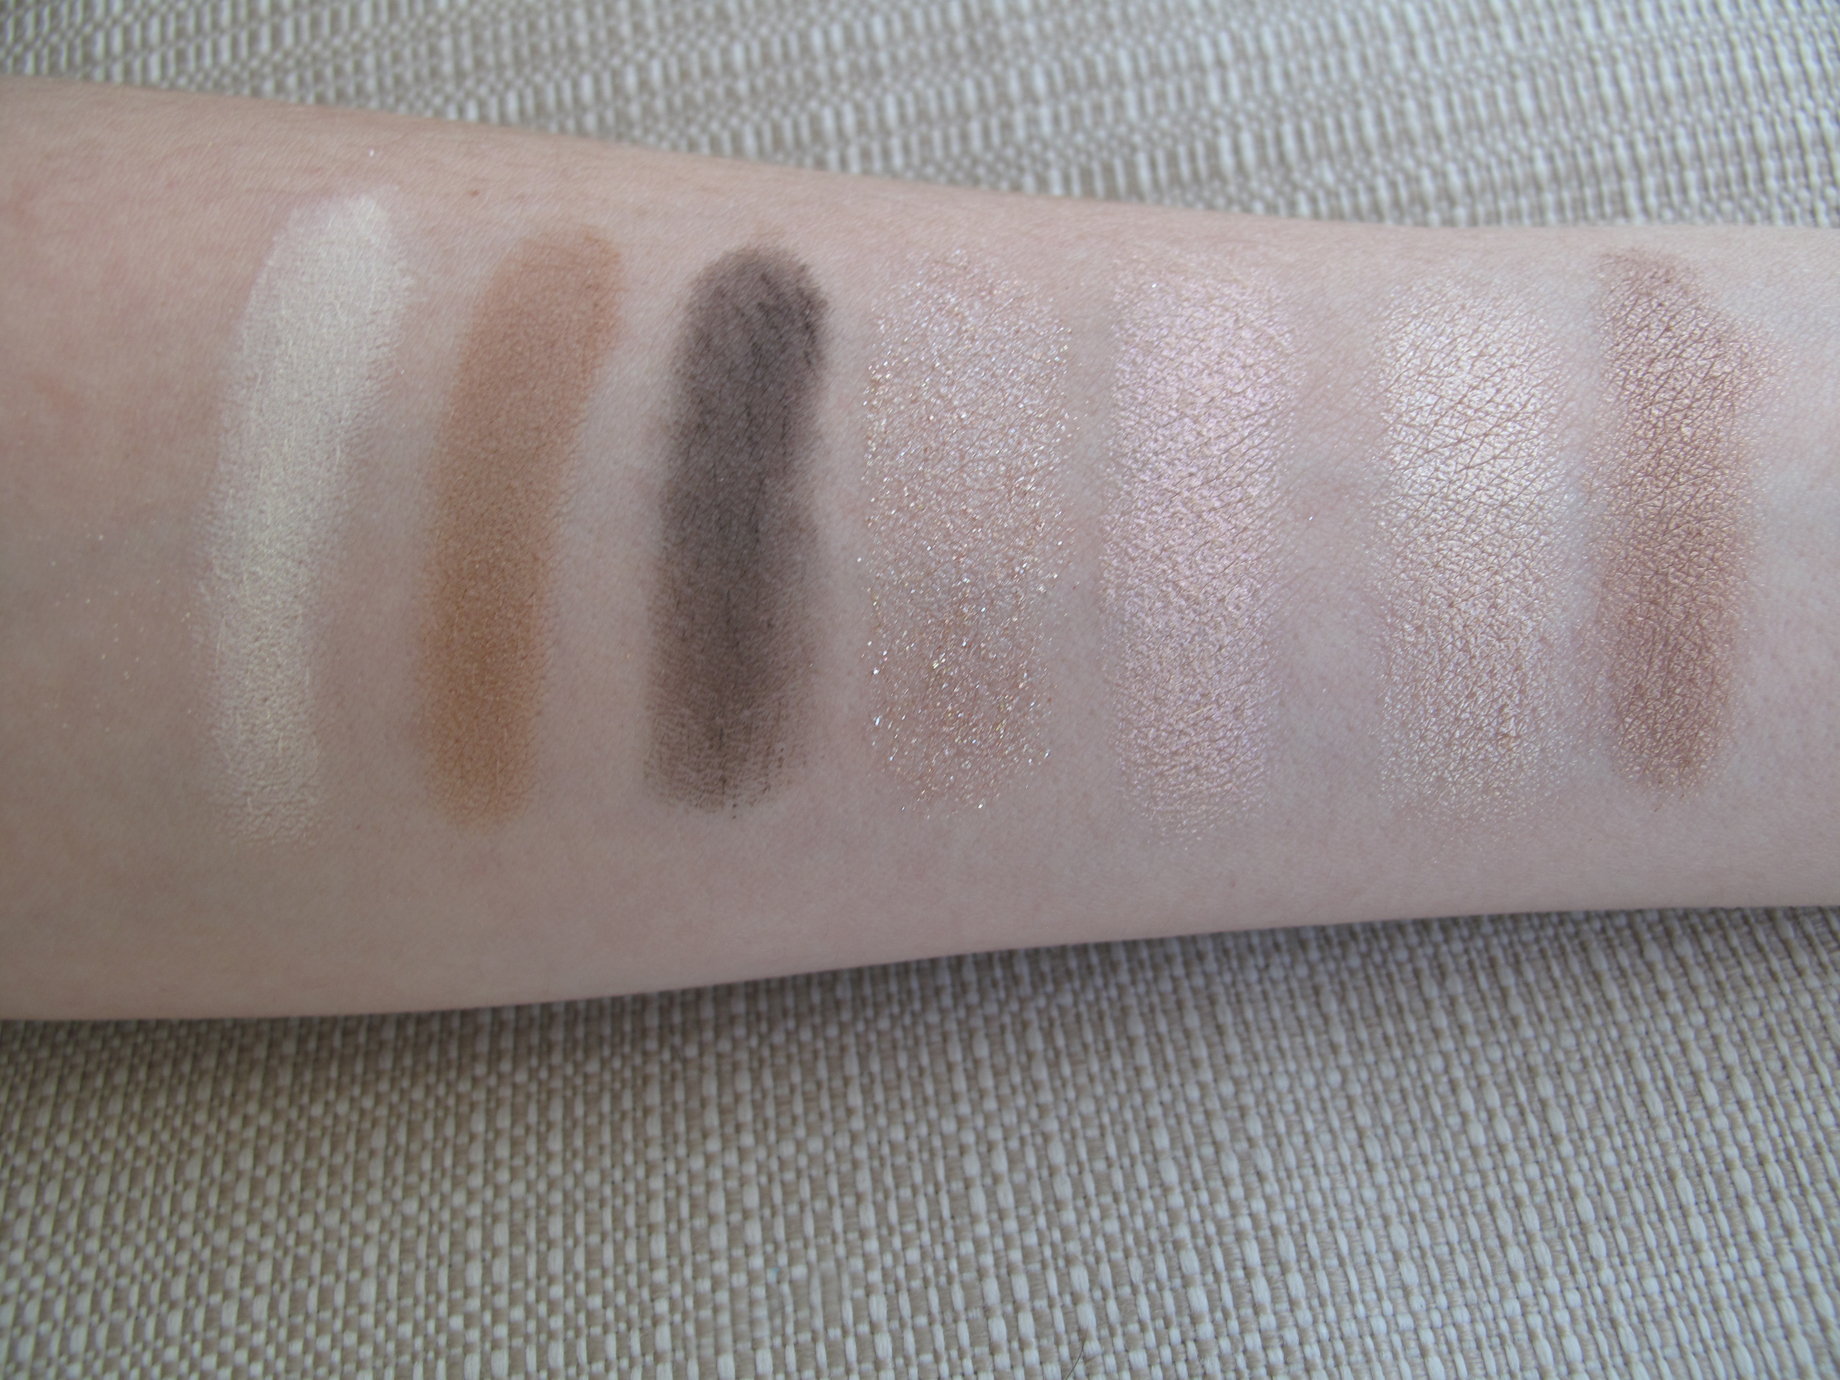 Marc Jacobs - The Lolita Palette - Swatch